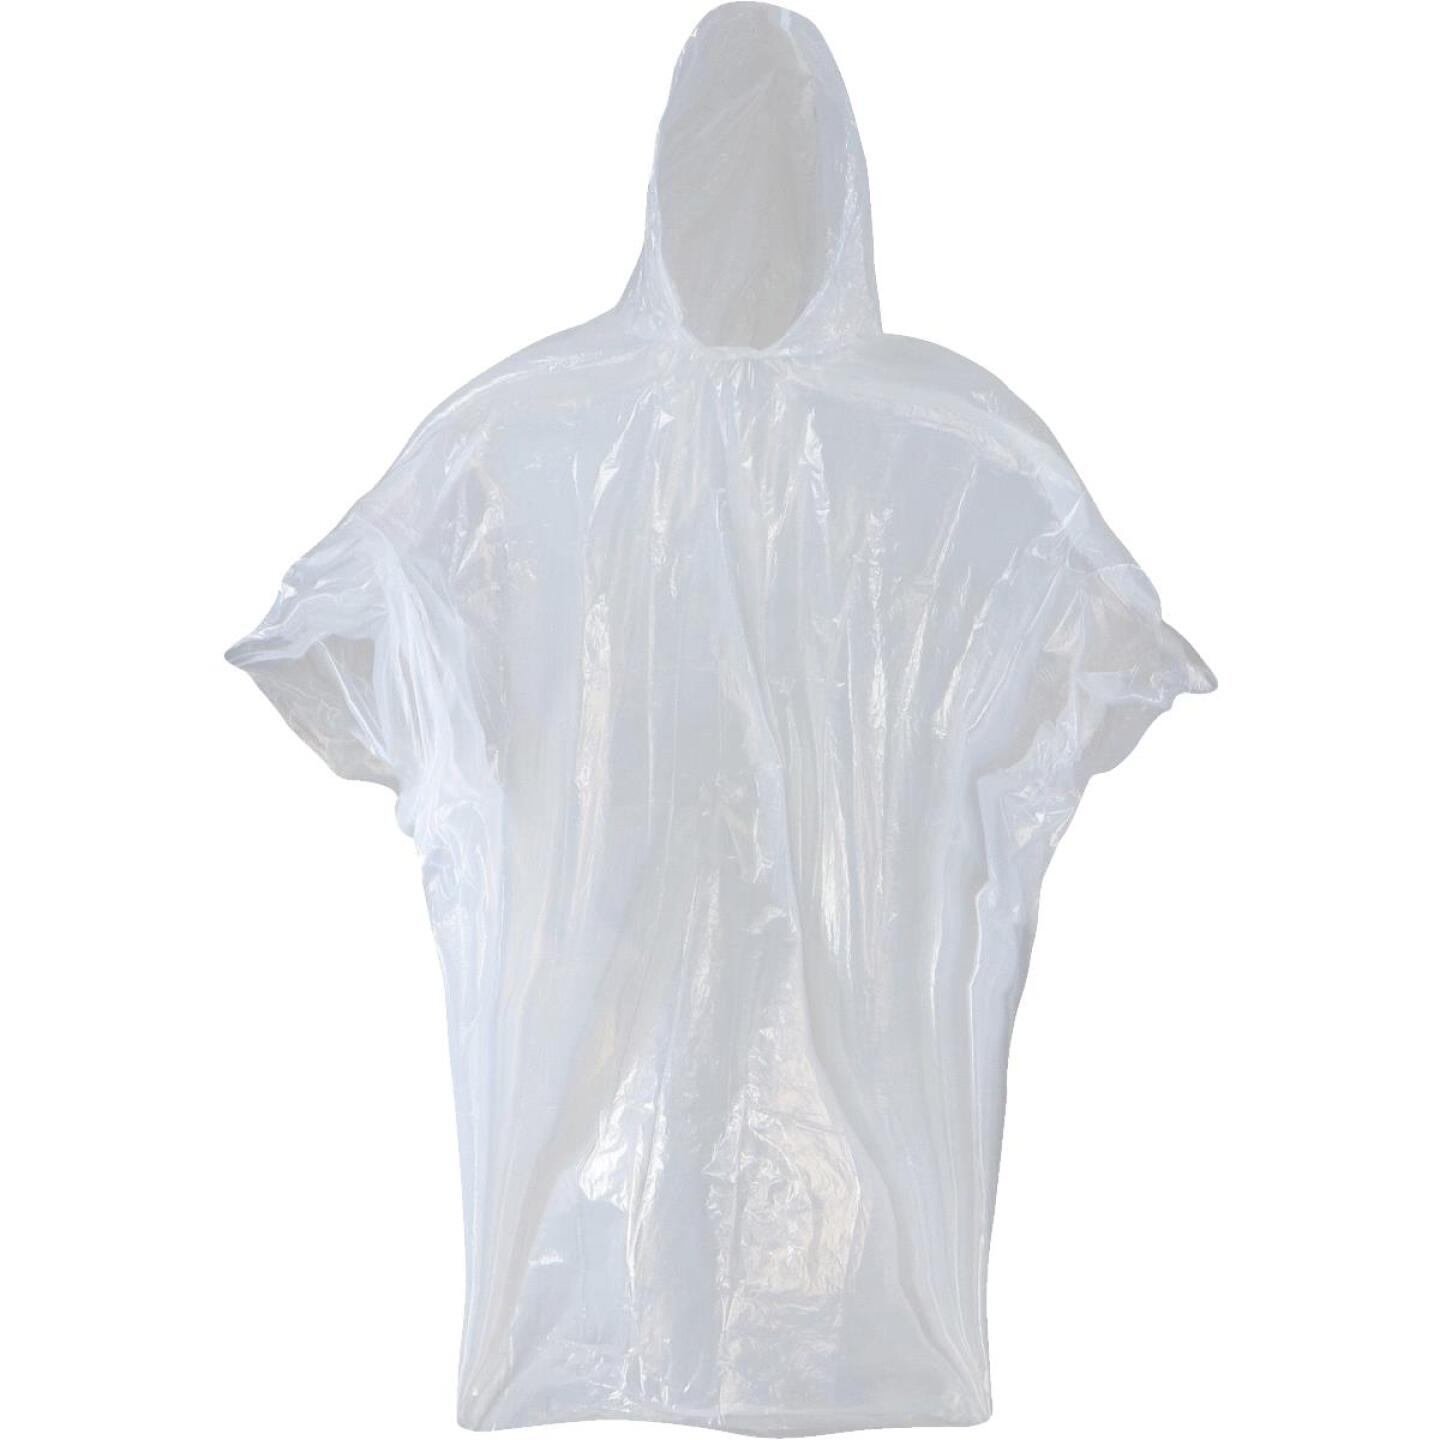 West Chester 50 In. x 80 In. Clear Disposable Rain Poncho Image 1